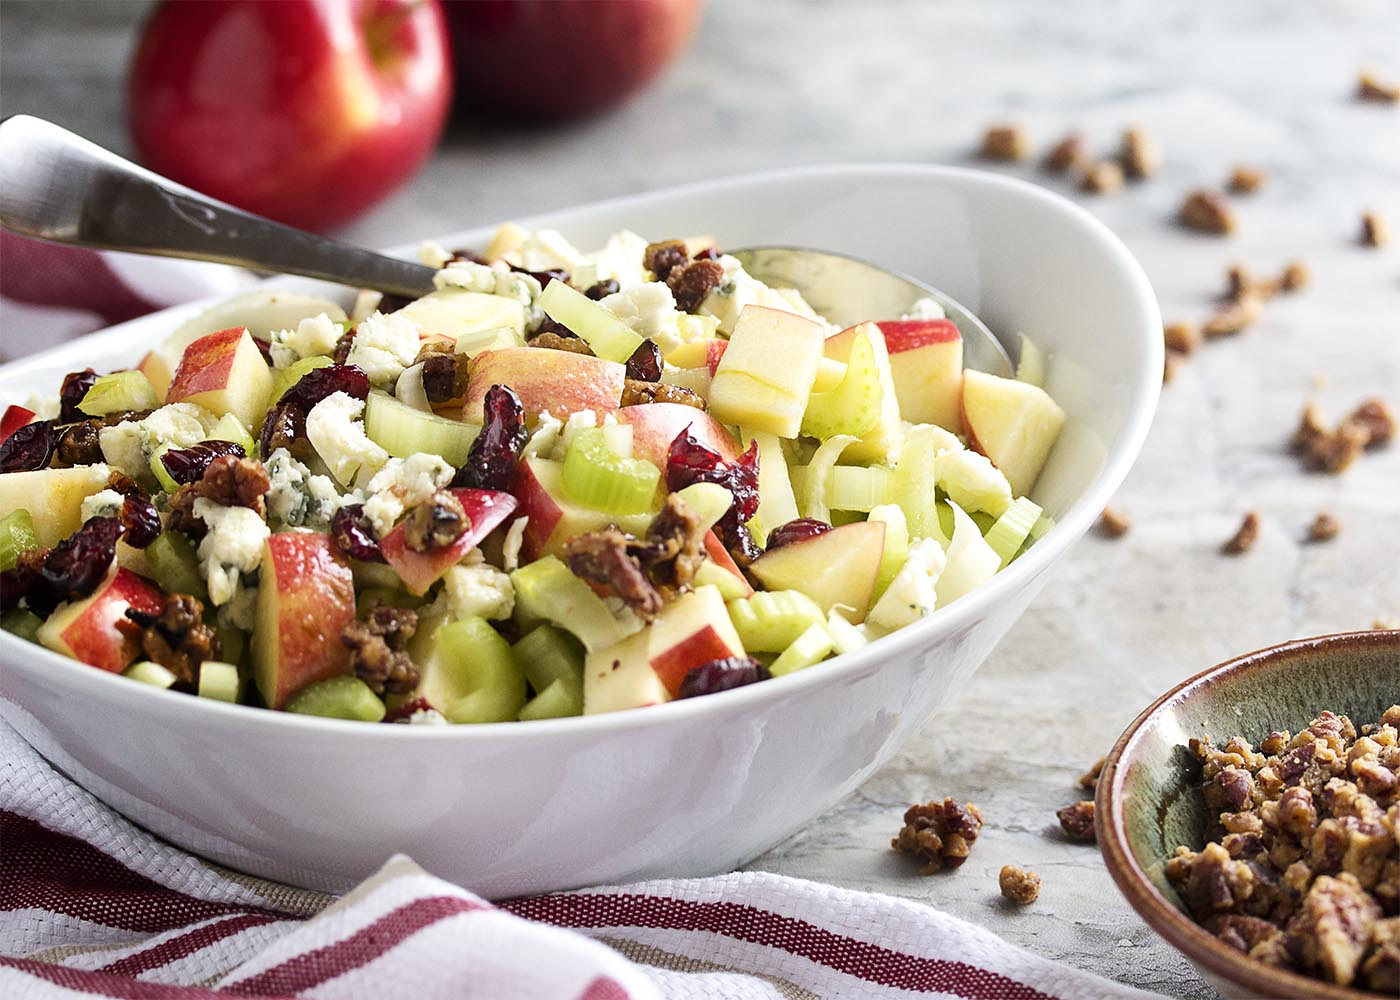 Maple glazed pecans, blue cheese, and diced apples combine with dried cranberries and sliced celery in this fall harvest salad. Great for weeknight dinners and a wonderful side for Thanksgiving.   justalittlebitofbacon.com